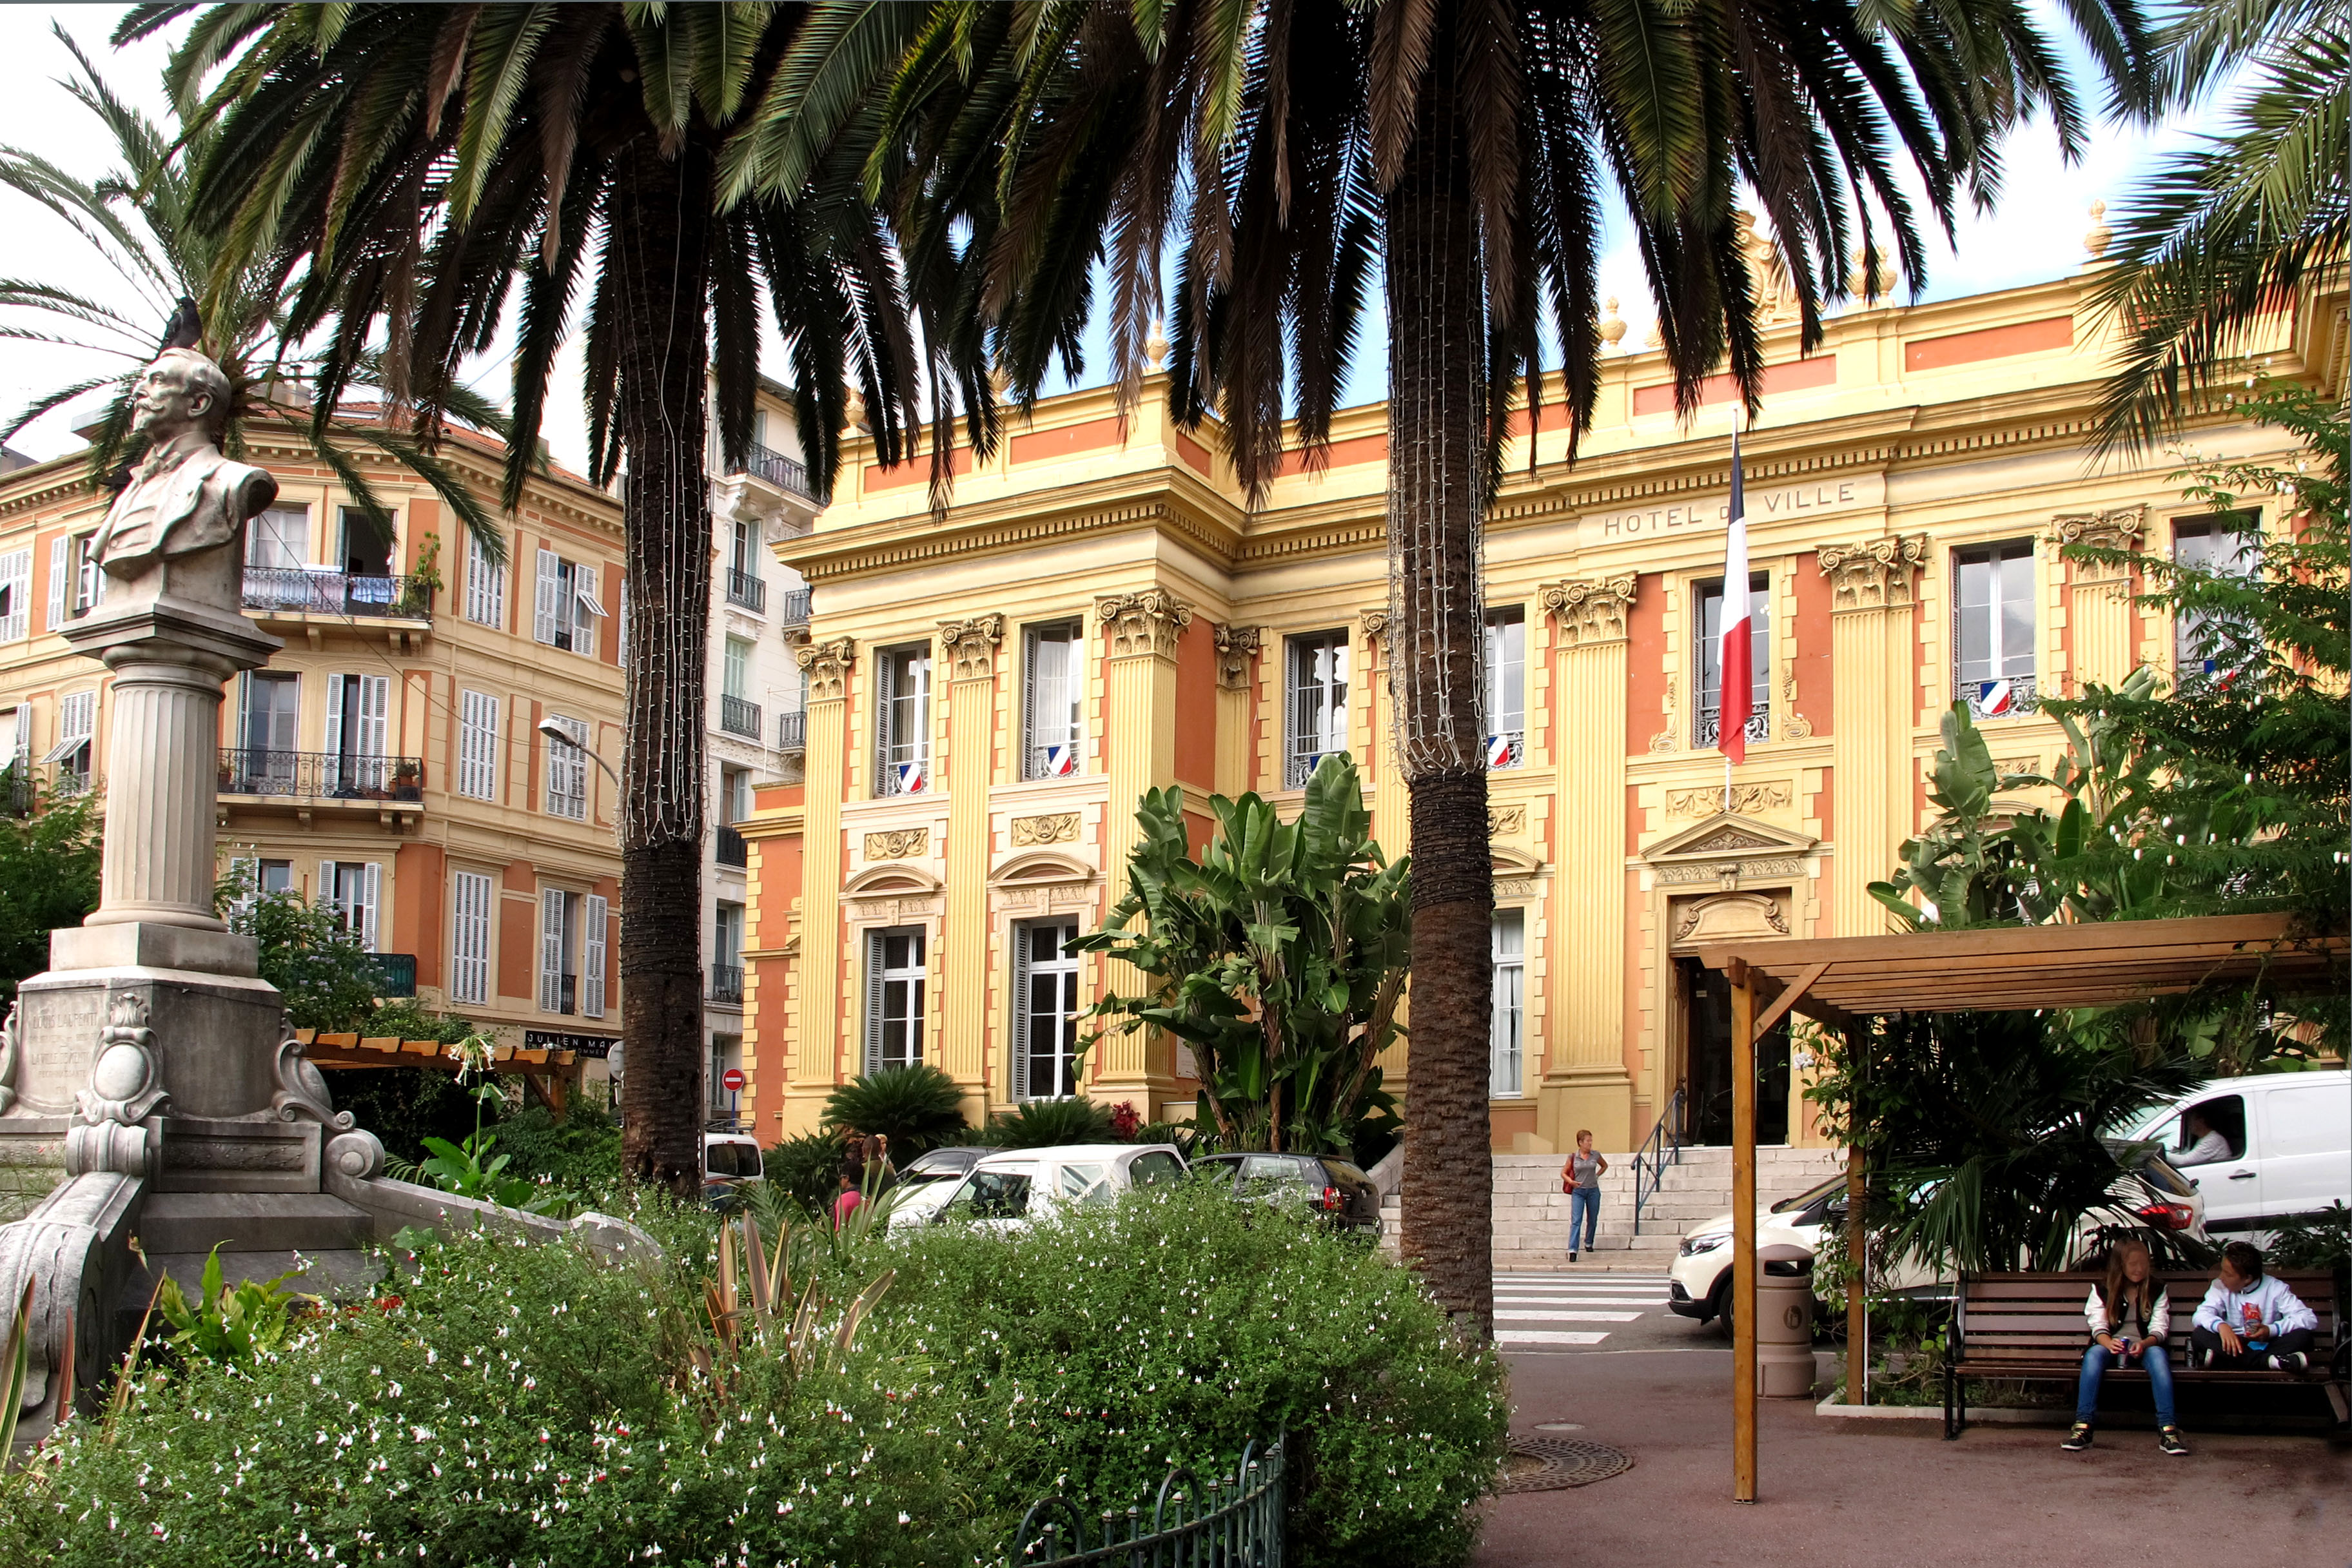 File menton h tel de ville france gb jpg wikimedia commons for Hotel original france